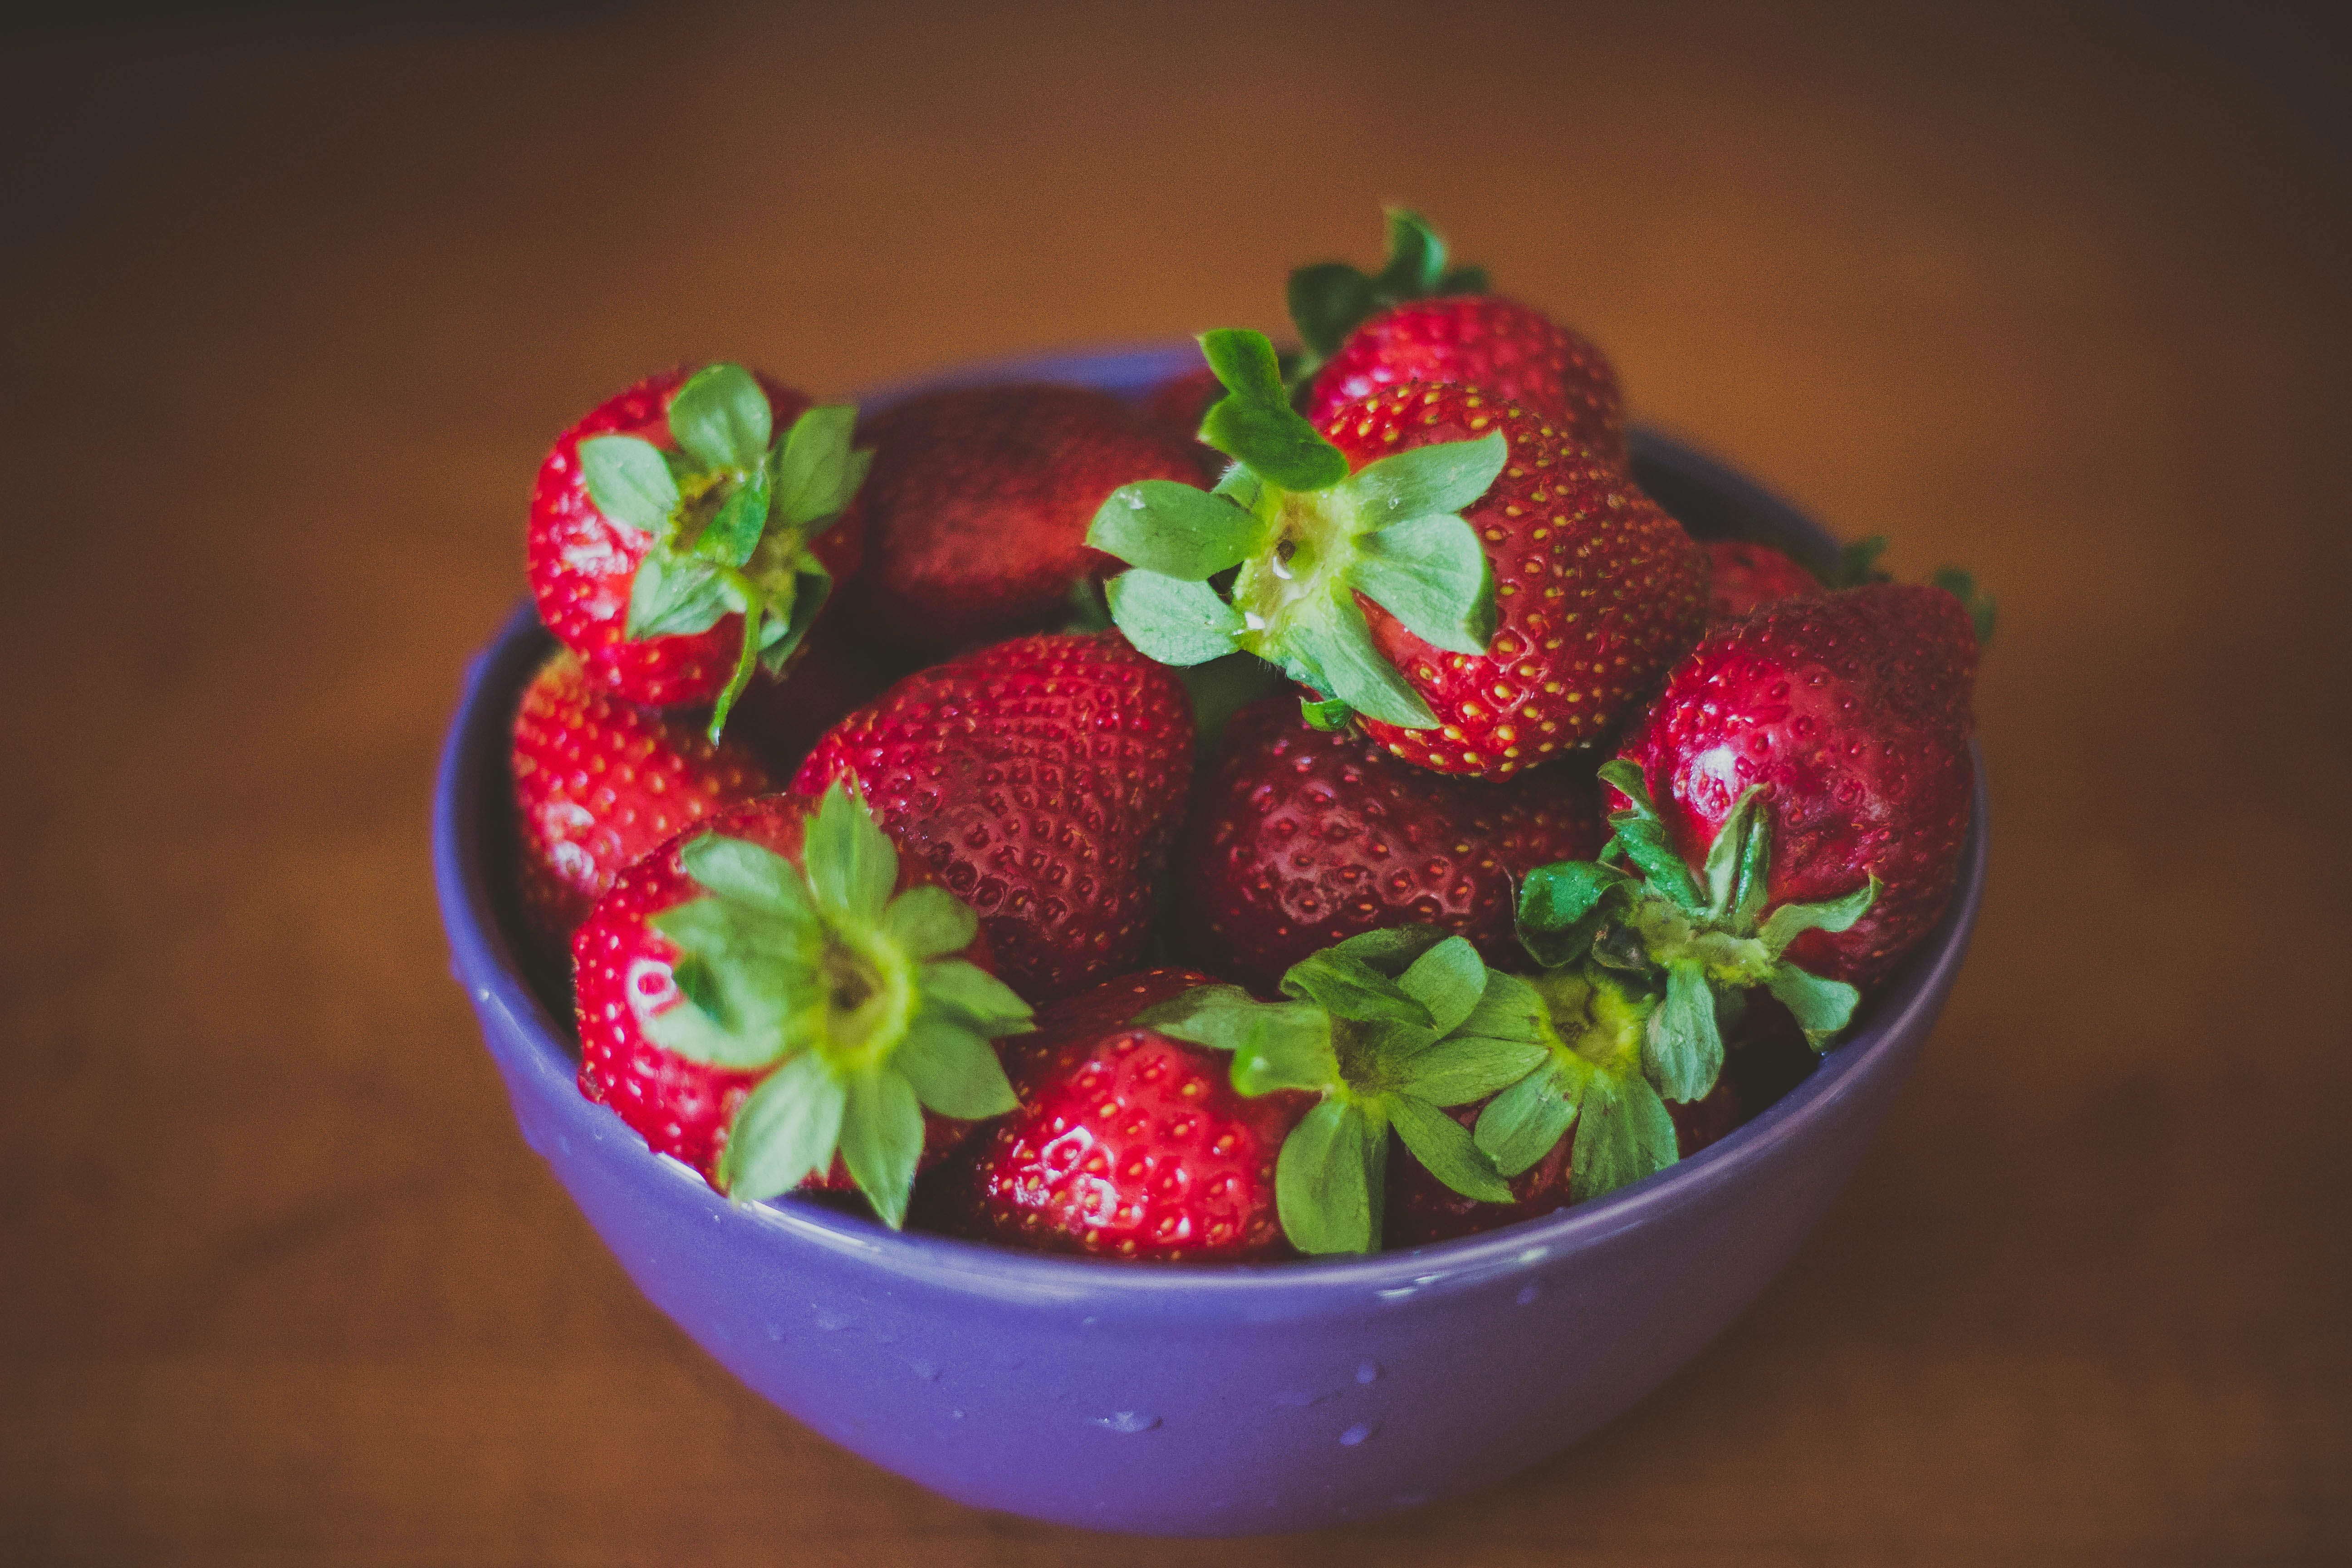 Blue Round Bowl of Fresh Strawberries